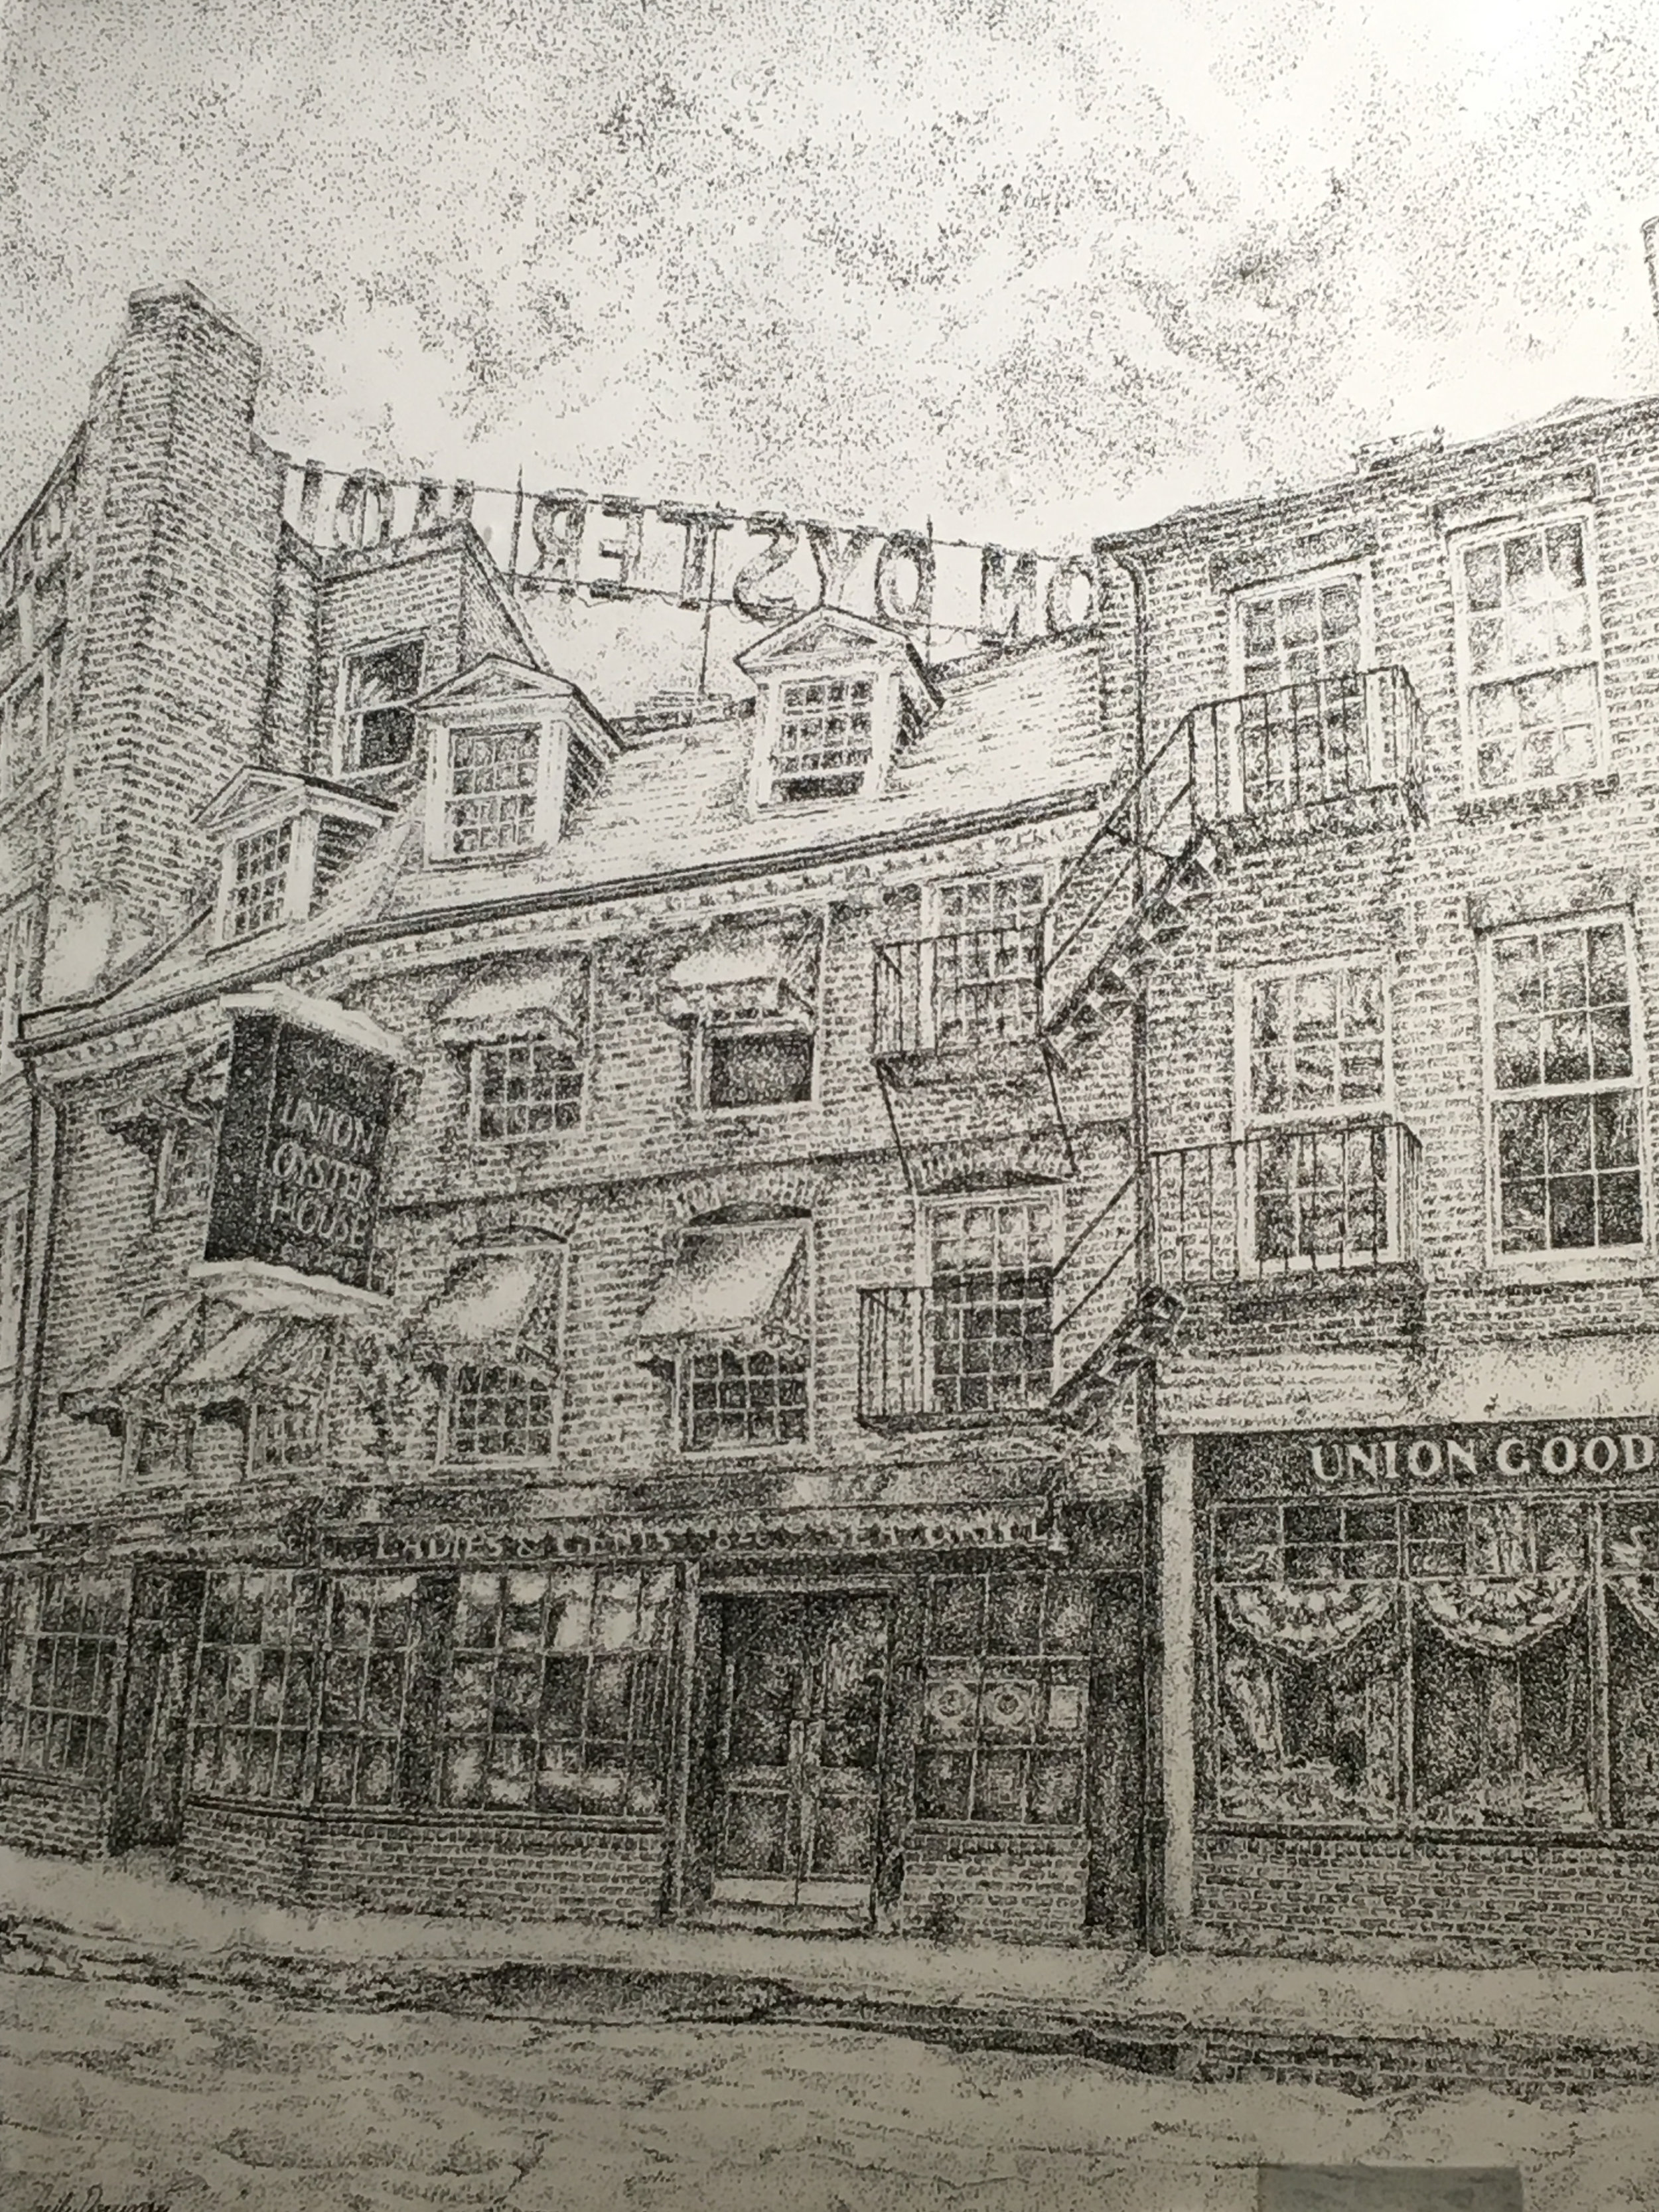 Cecily Downer  Union Oyster House Pen & Ink  A.P. Schalick HS 14 x 11  Salem County